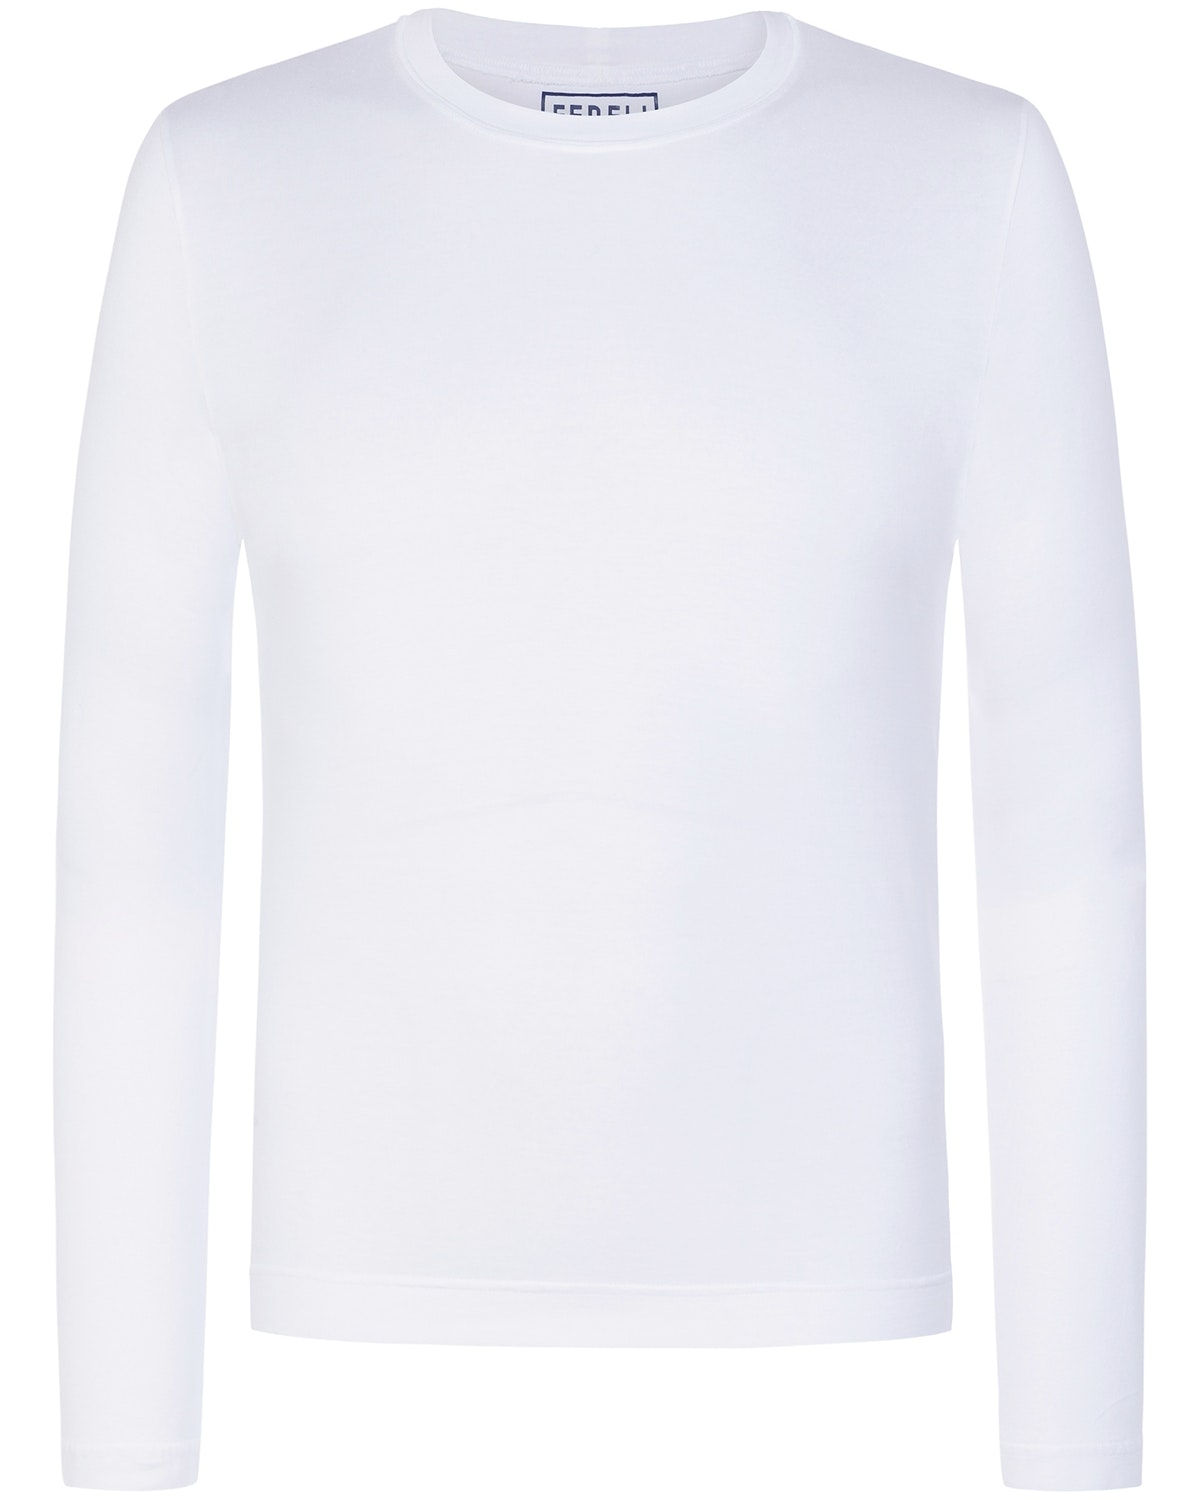 Fedeli, Longsleeve, Spring-Summer Collection 2019, cotton, Italian Sportswear, Lodenfrey, Munich